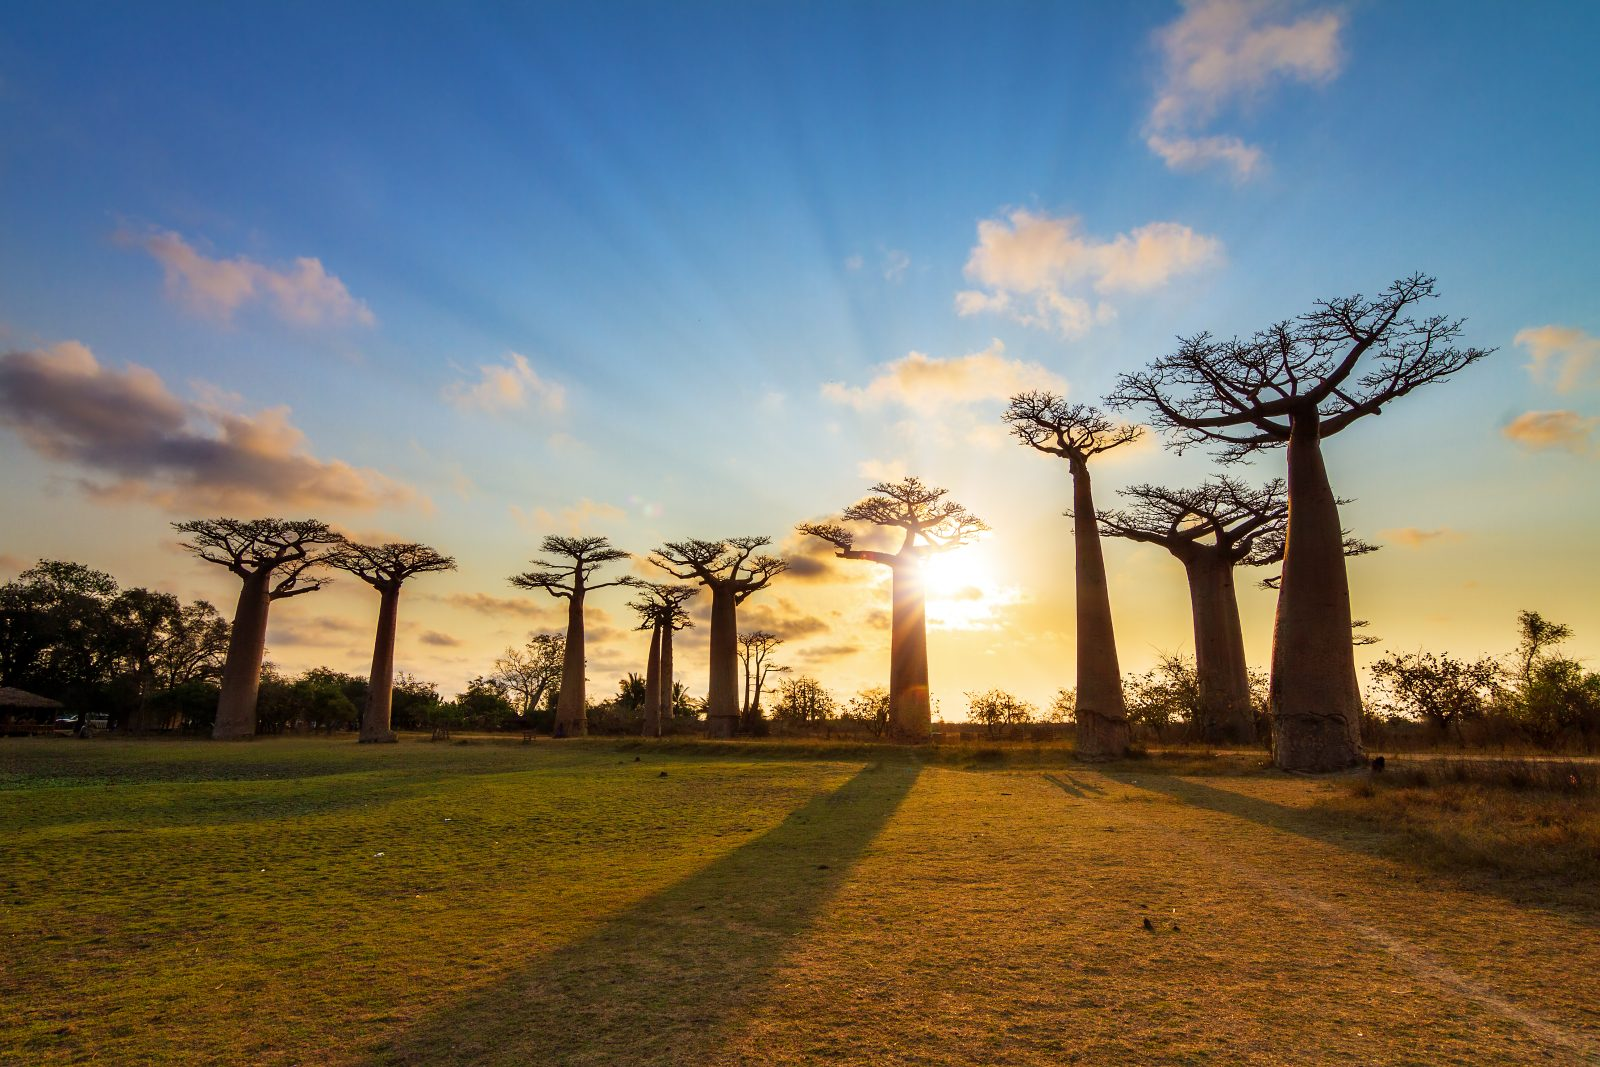 Avenue of Baobabs 1